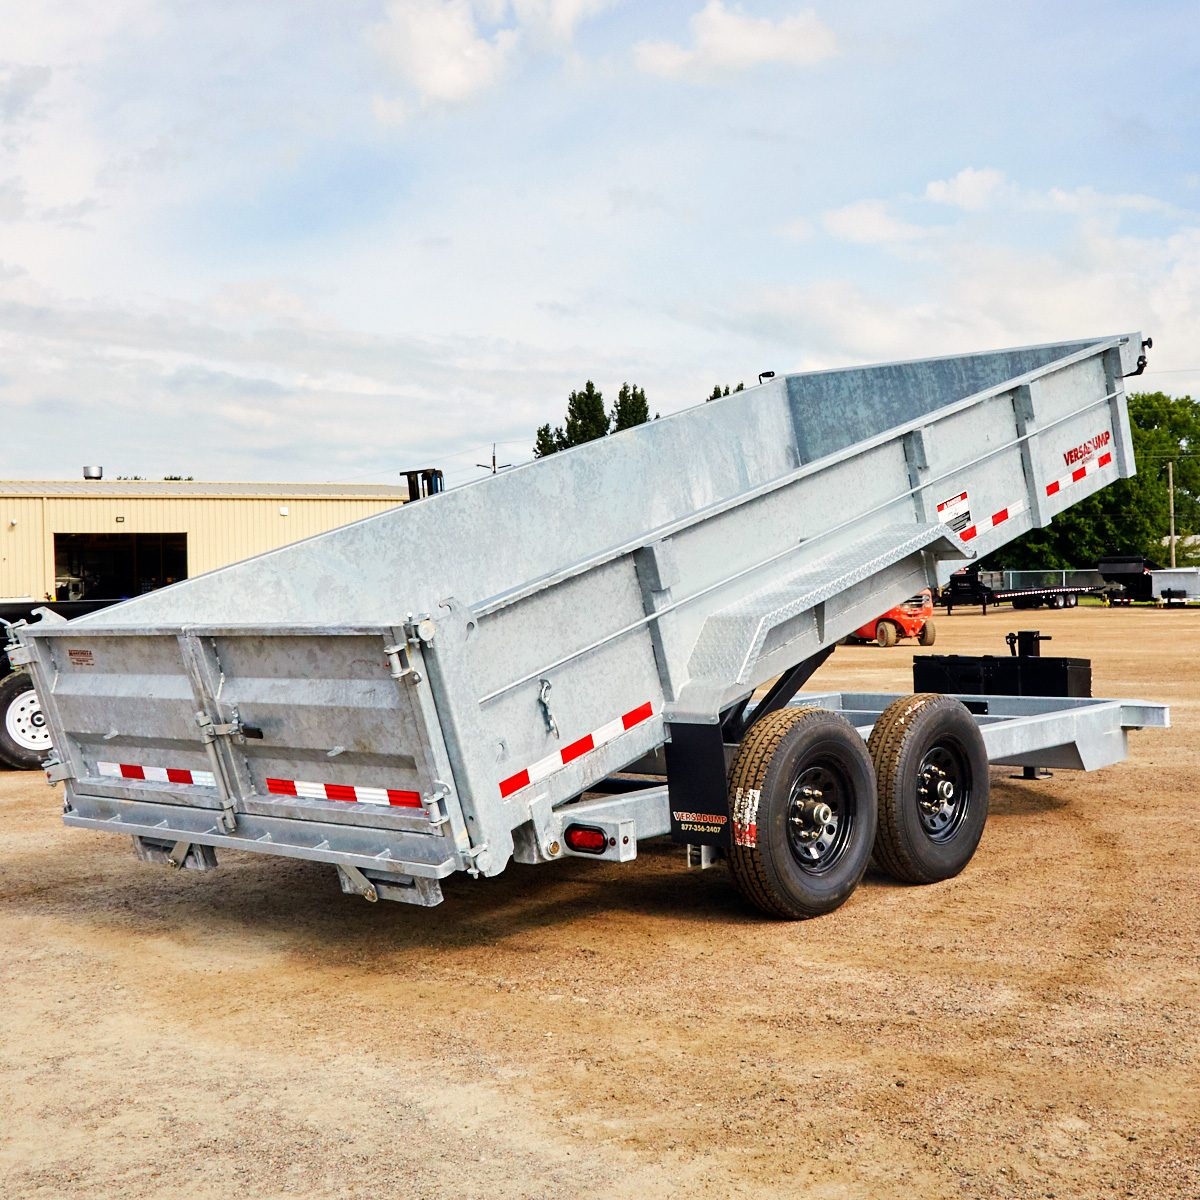 Galvanized Trailers | Construction Pro Tips